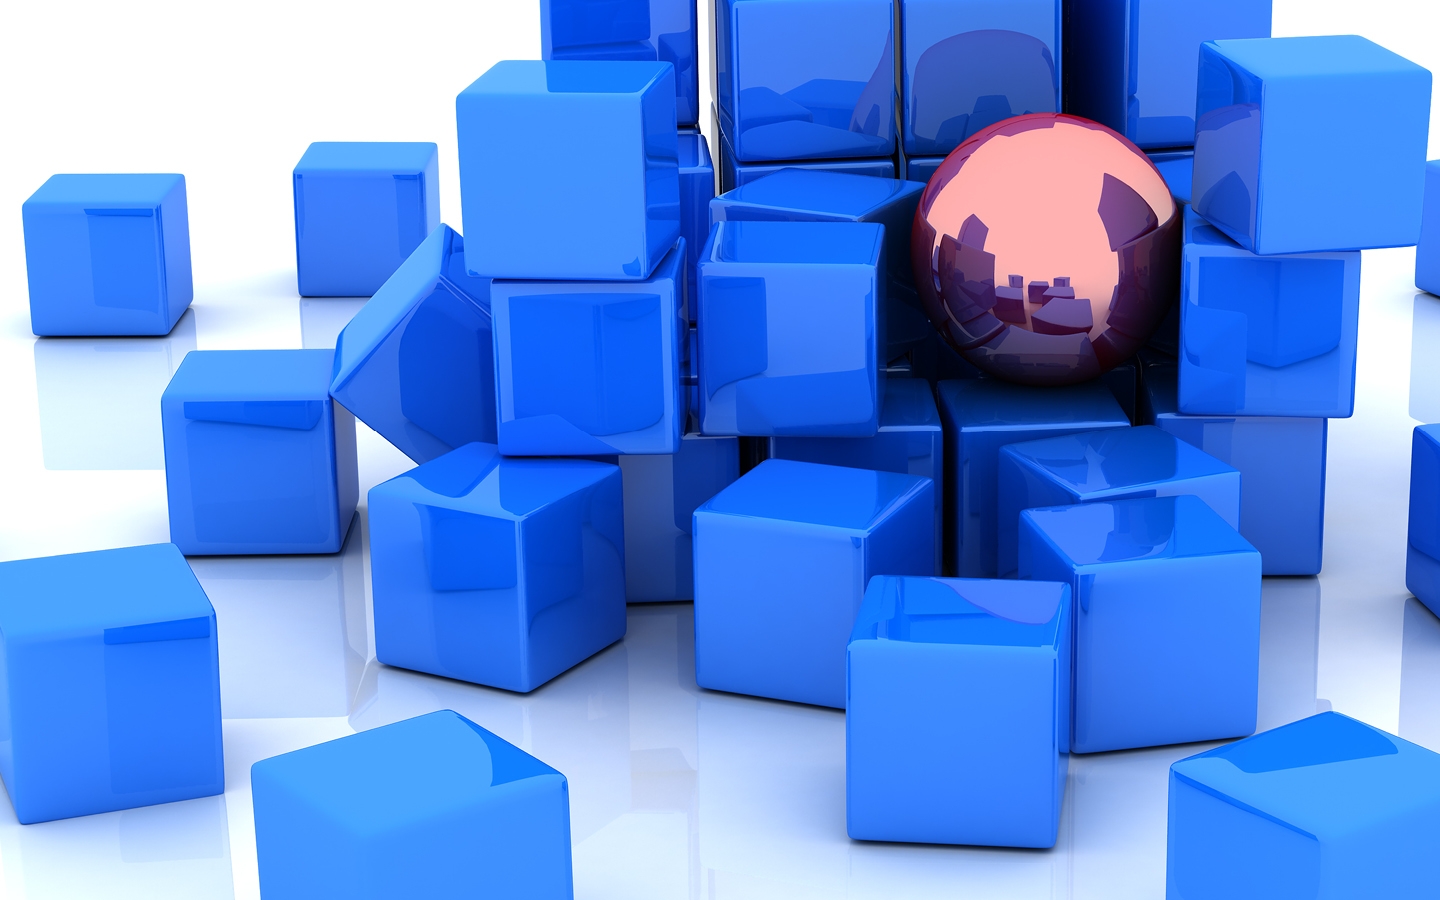 Abstract image showing blue cubes, stacked on top of each other